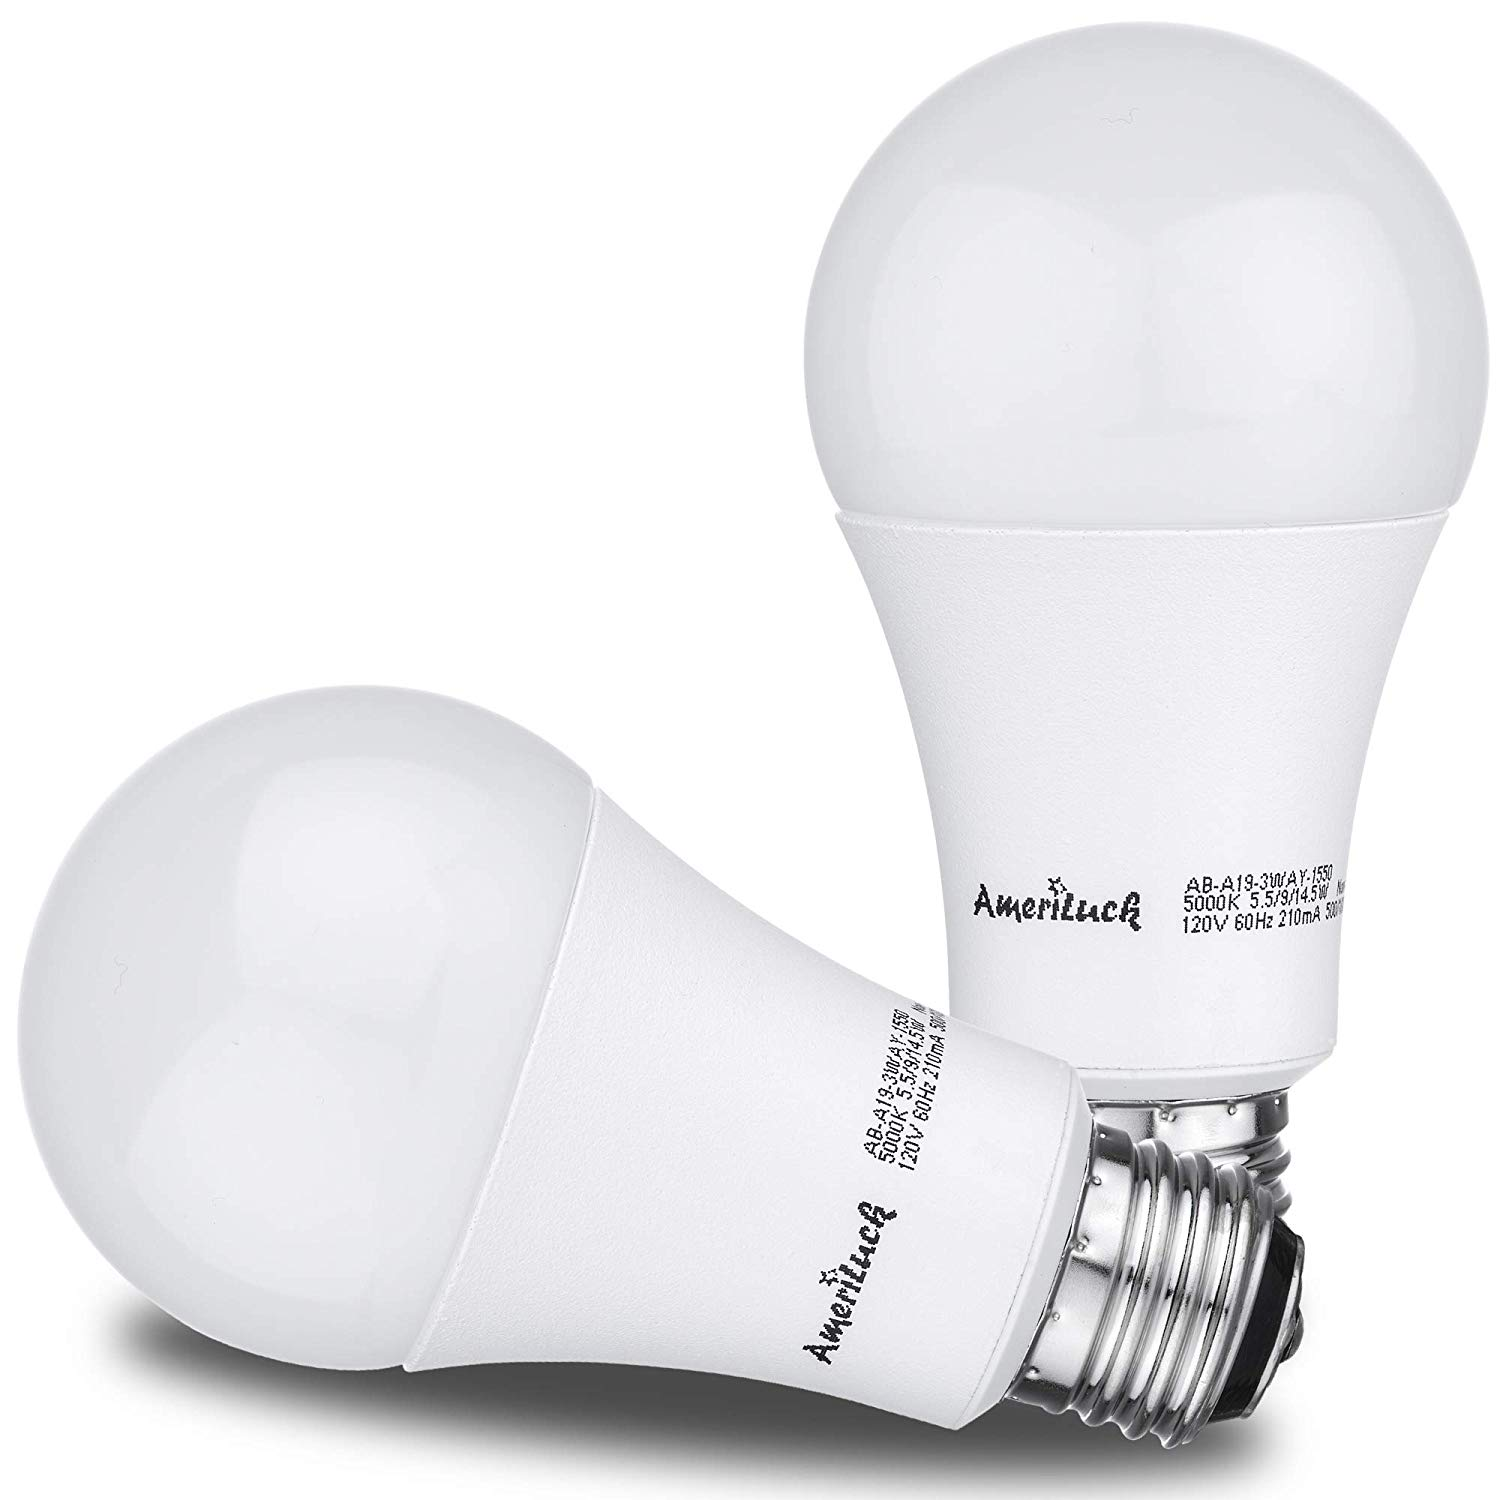 AmeriLuck Daylight LED 3-Way Light Bulb, 40-60-100W Equivalent, 500-1000-1500+Lumens, Lo-Me-Hi 5.5-9-14.5W, CRI 80+, Omni-Directional A19-UL Listed (5000K | 2 Pack)